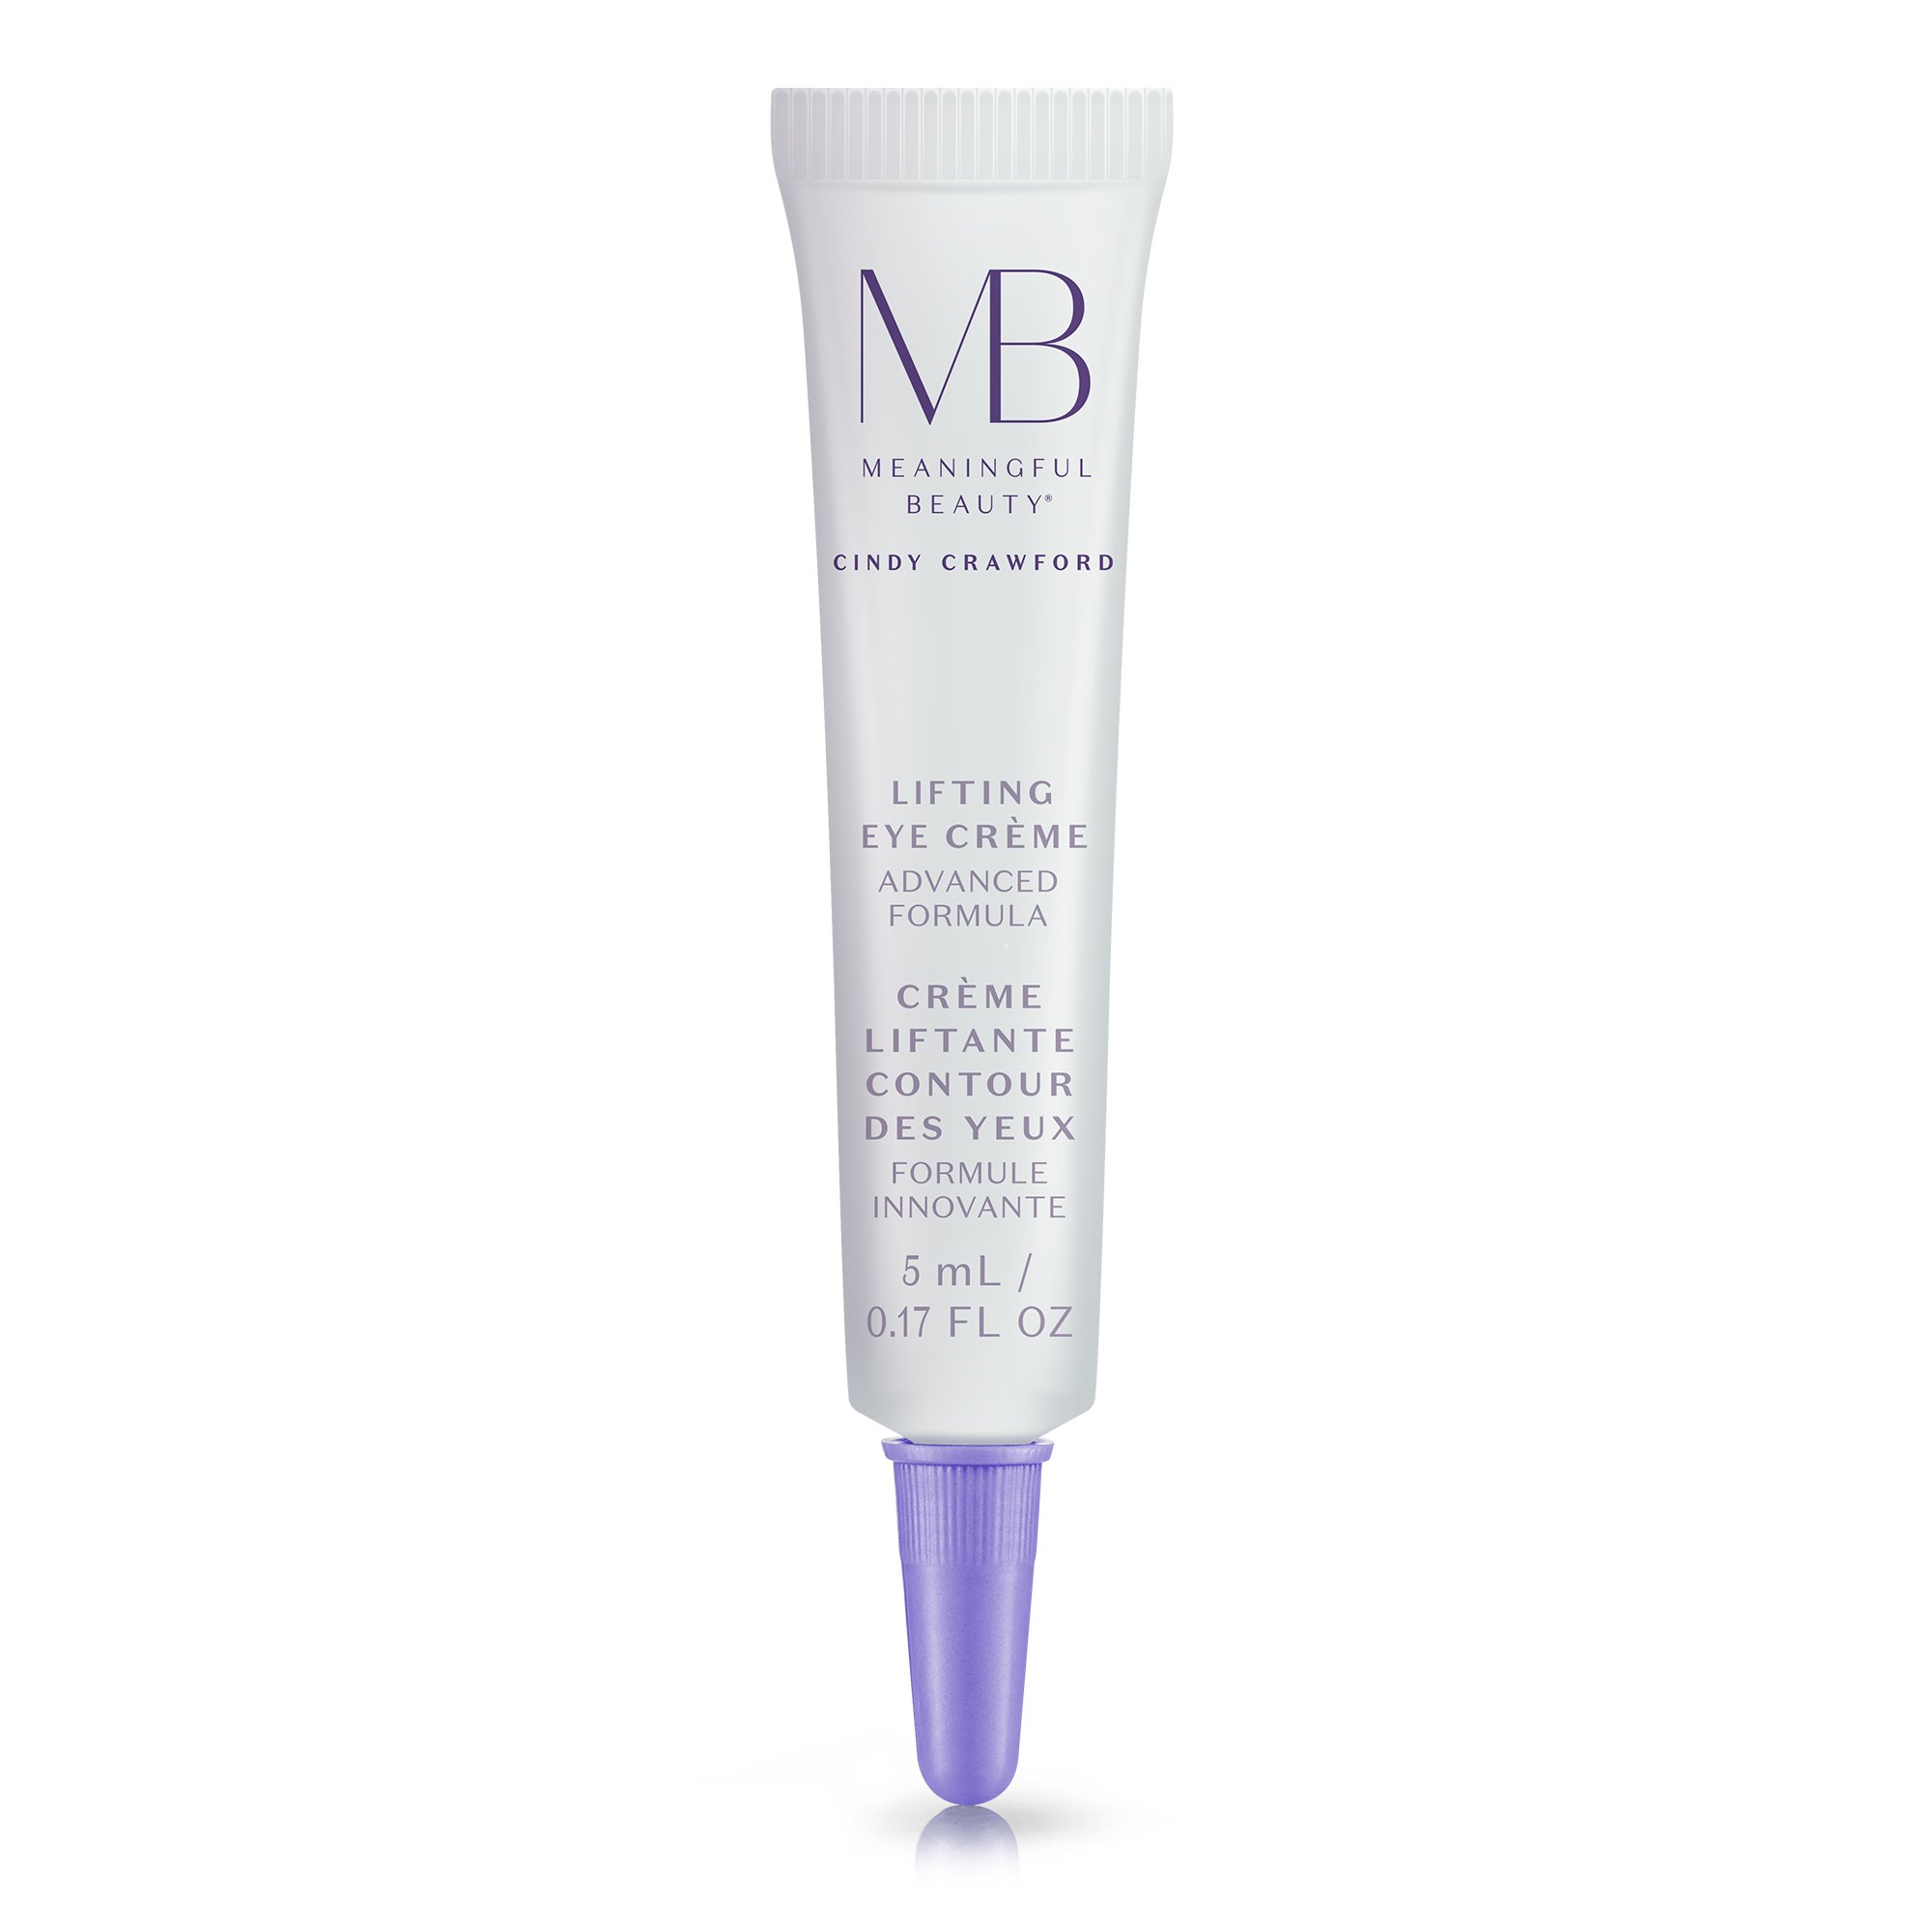 Meaningful Beauty - Lifting Eye Crème Advanced Formula - Under Eye Care - 0.17 Ounce - MT. MT.0357 by Meaningful Beauty